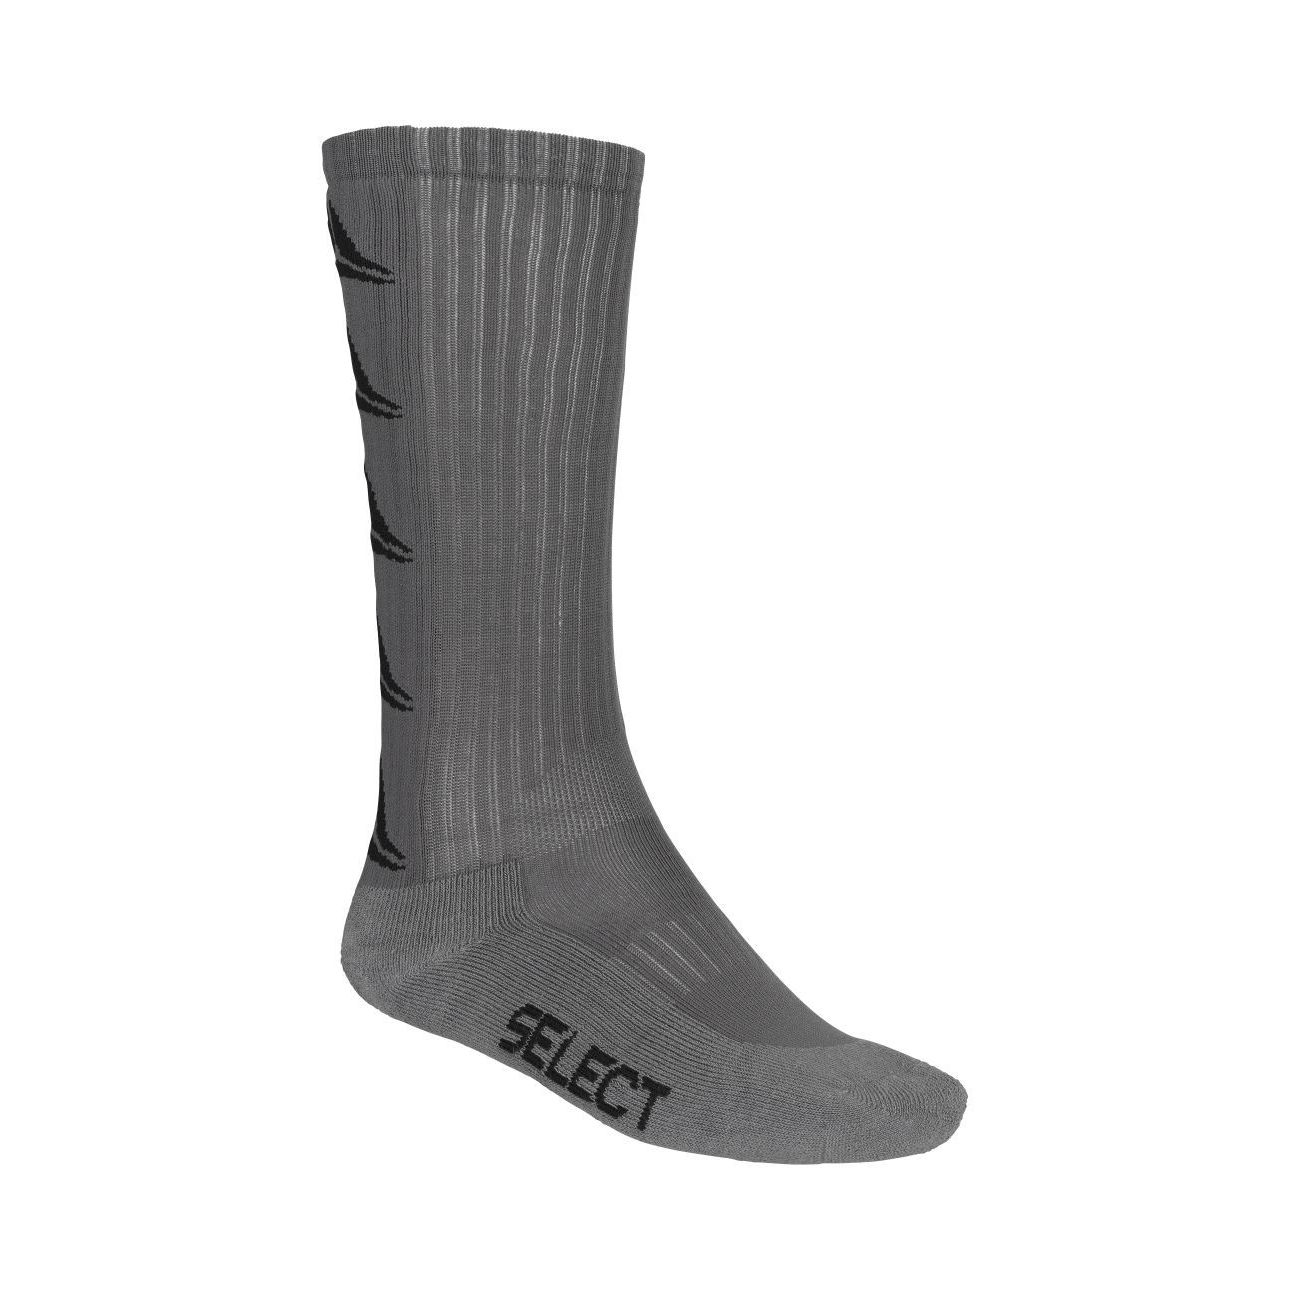 Ultimate Chaussettes Adulte Select Longues Gris Multisport xWrBdeQCo